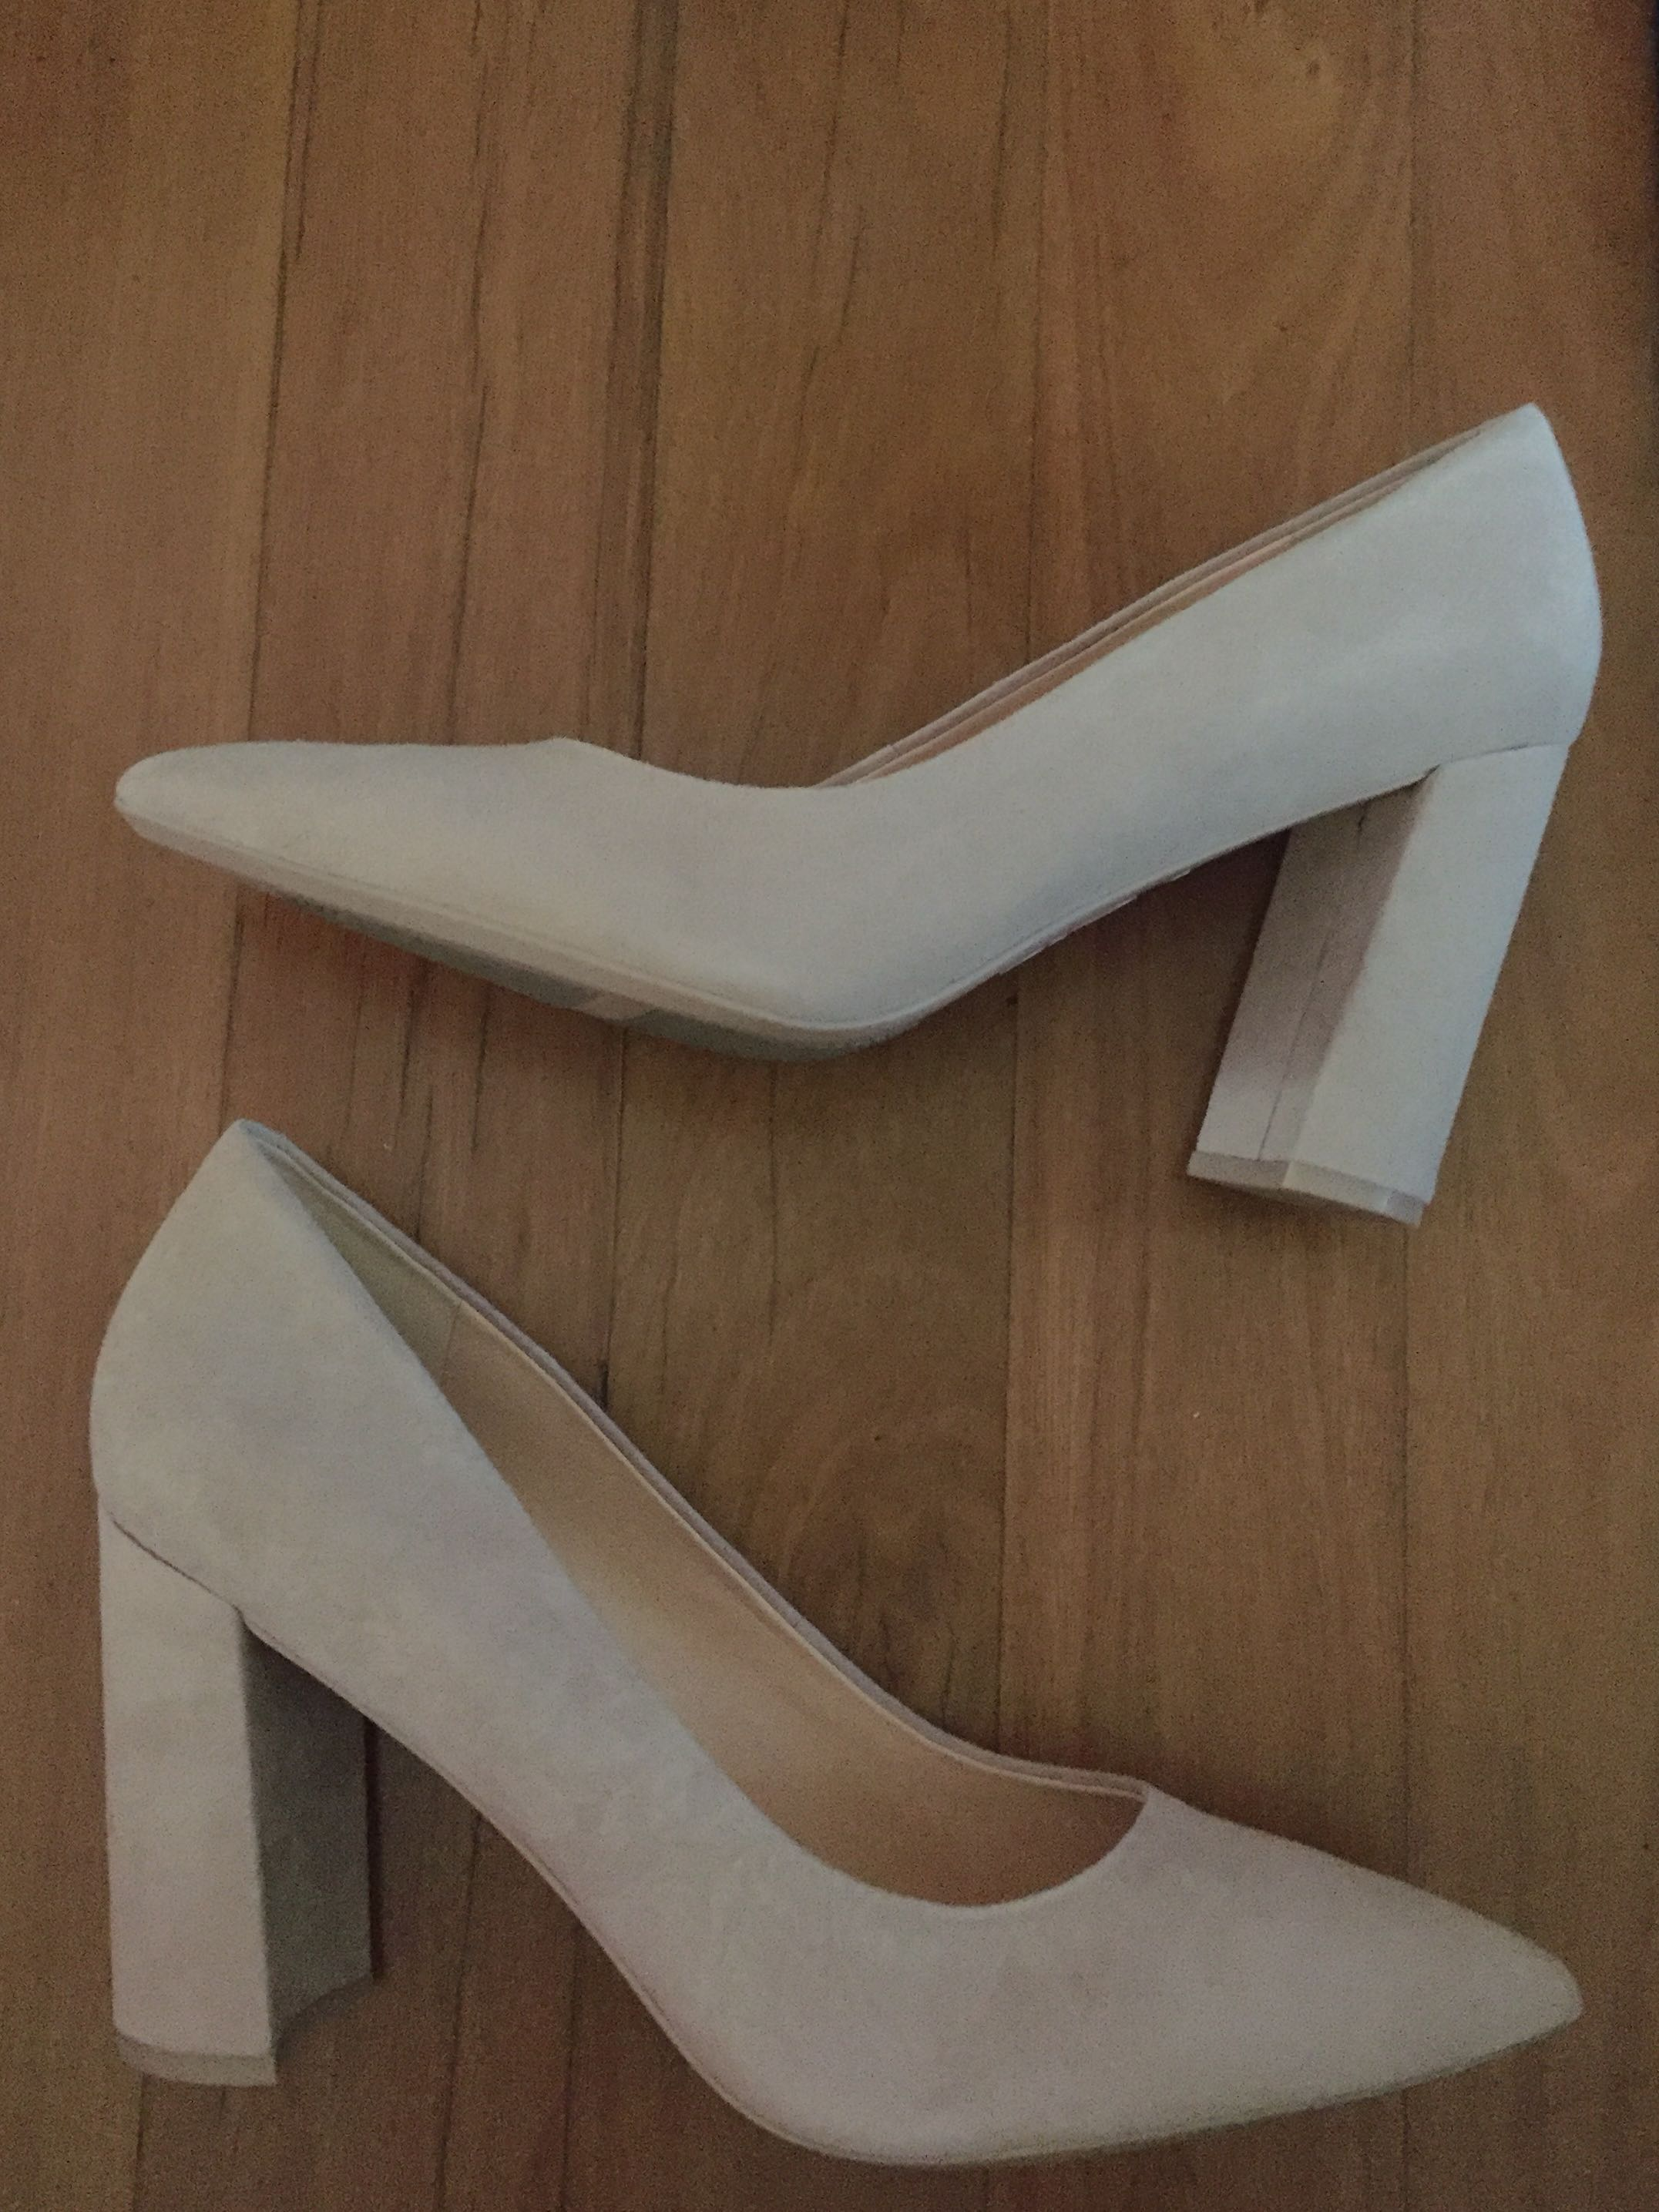 BRAND NEW Nine West Heels Size 9.5